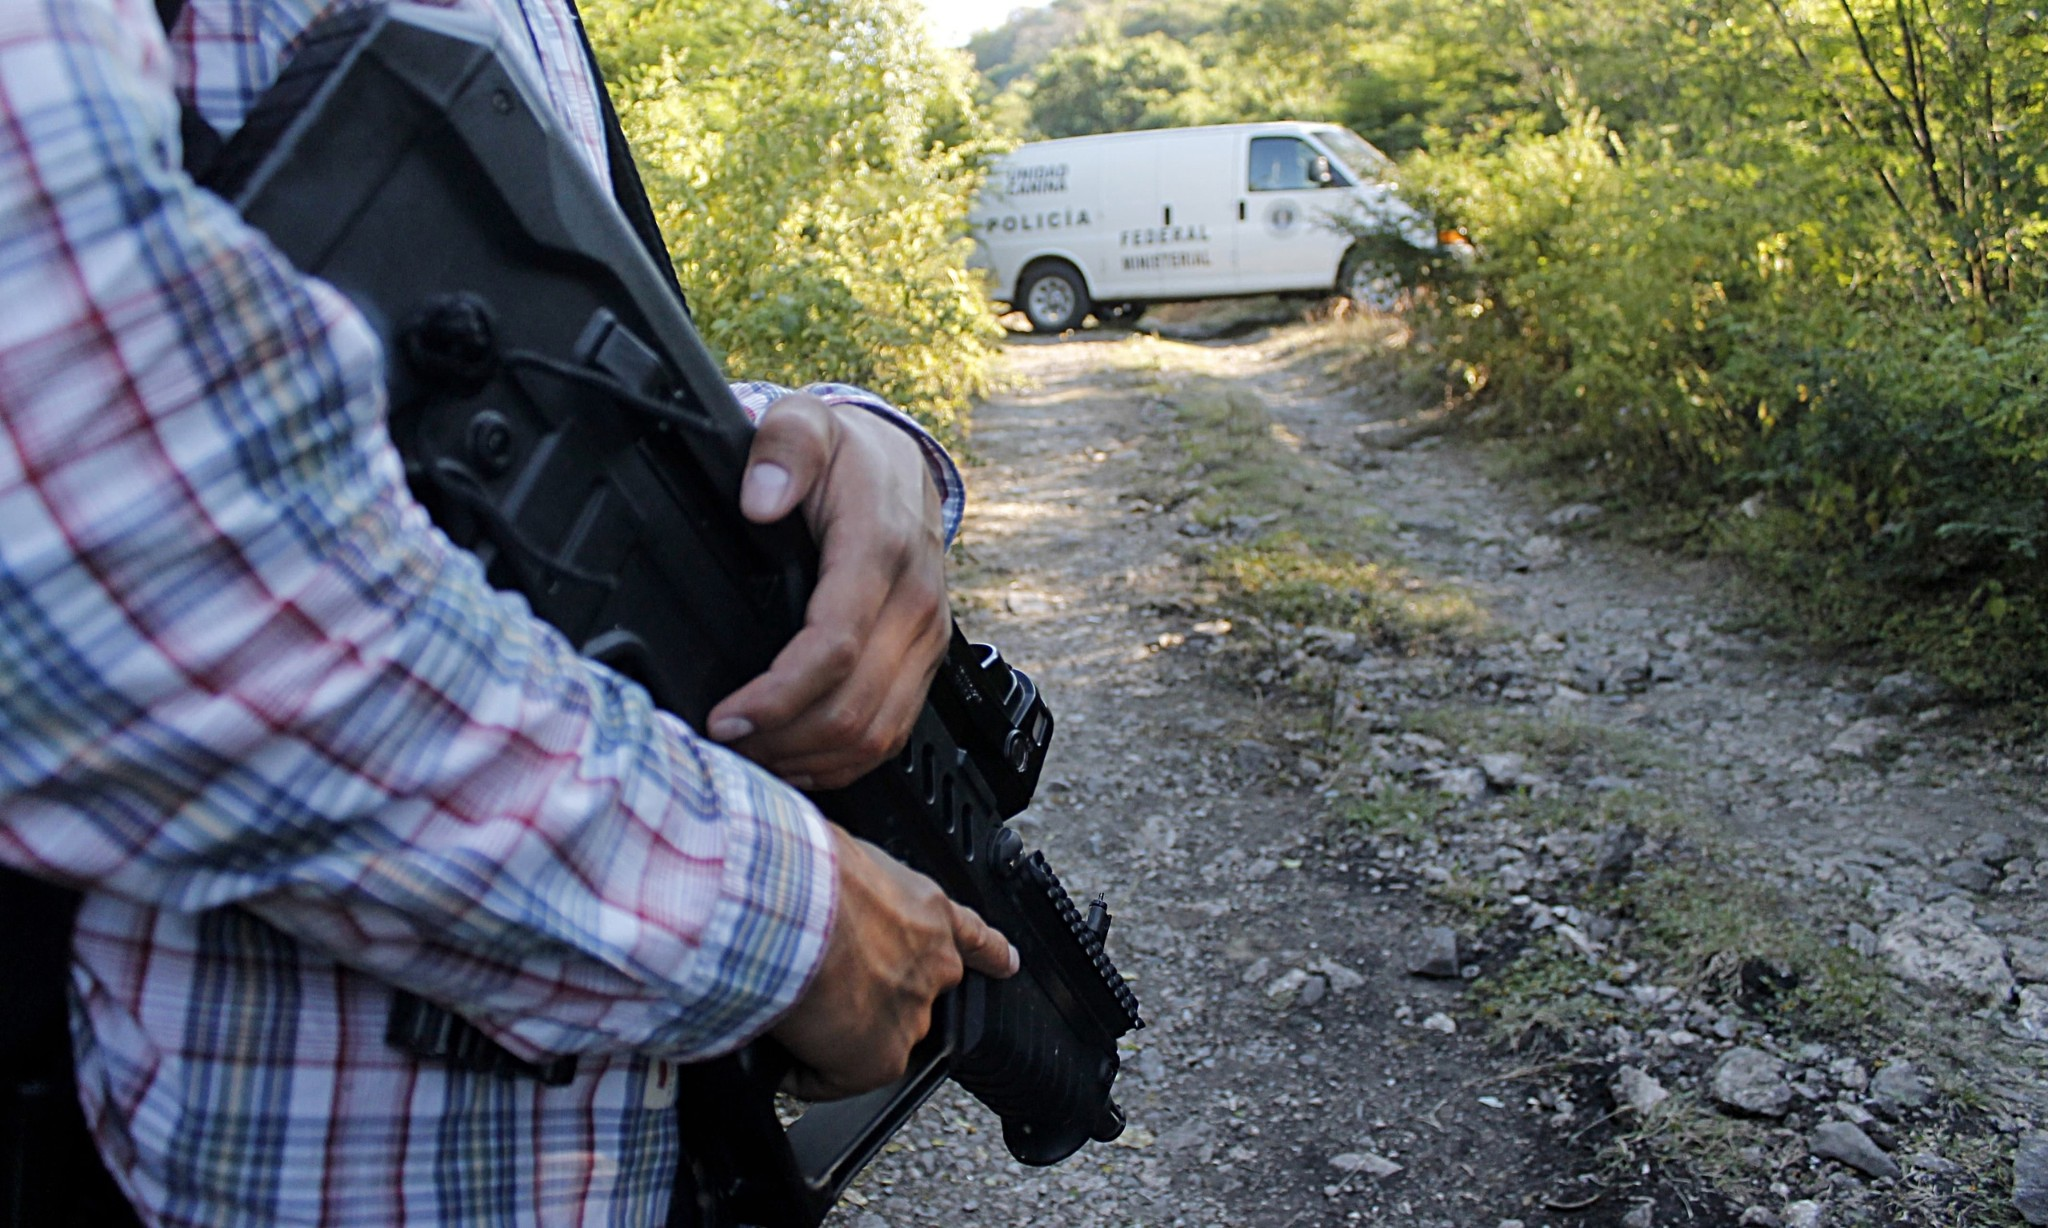 Mexico: officials searching for 43 missing students find human remains